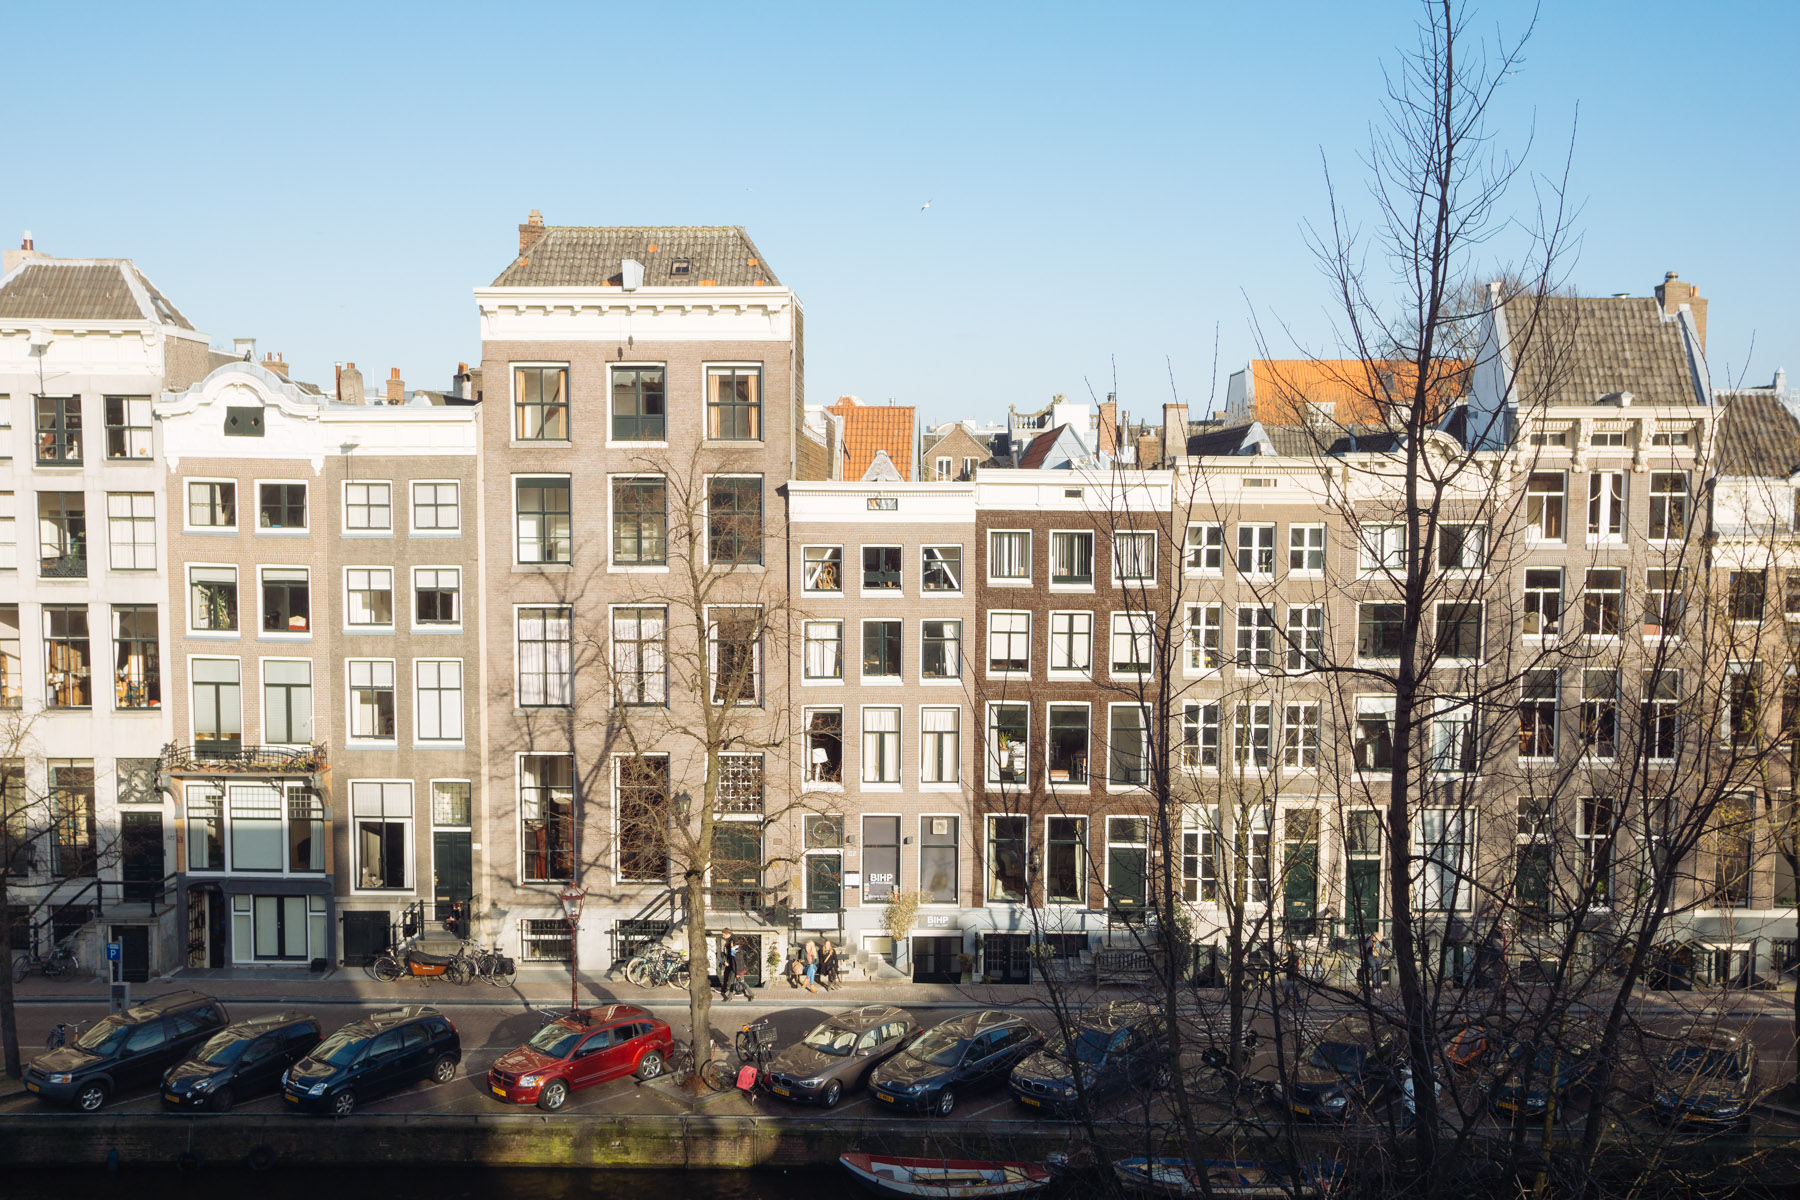 The hotel dylan review luxury boutique hotel in amsterdam for Hotel to stay amsterdam